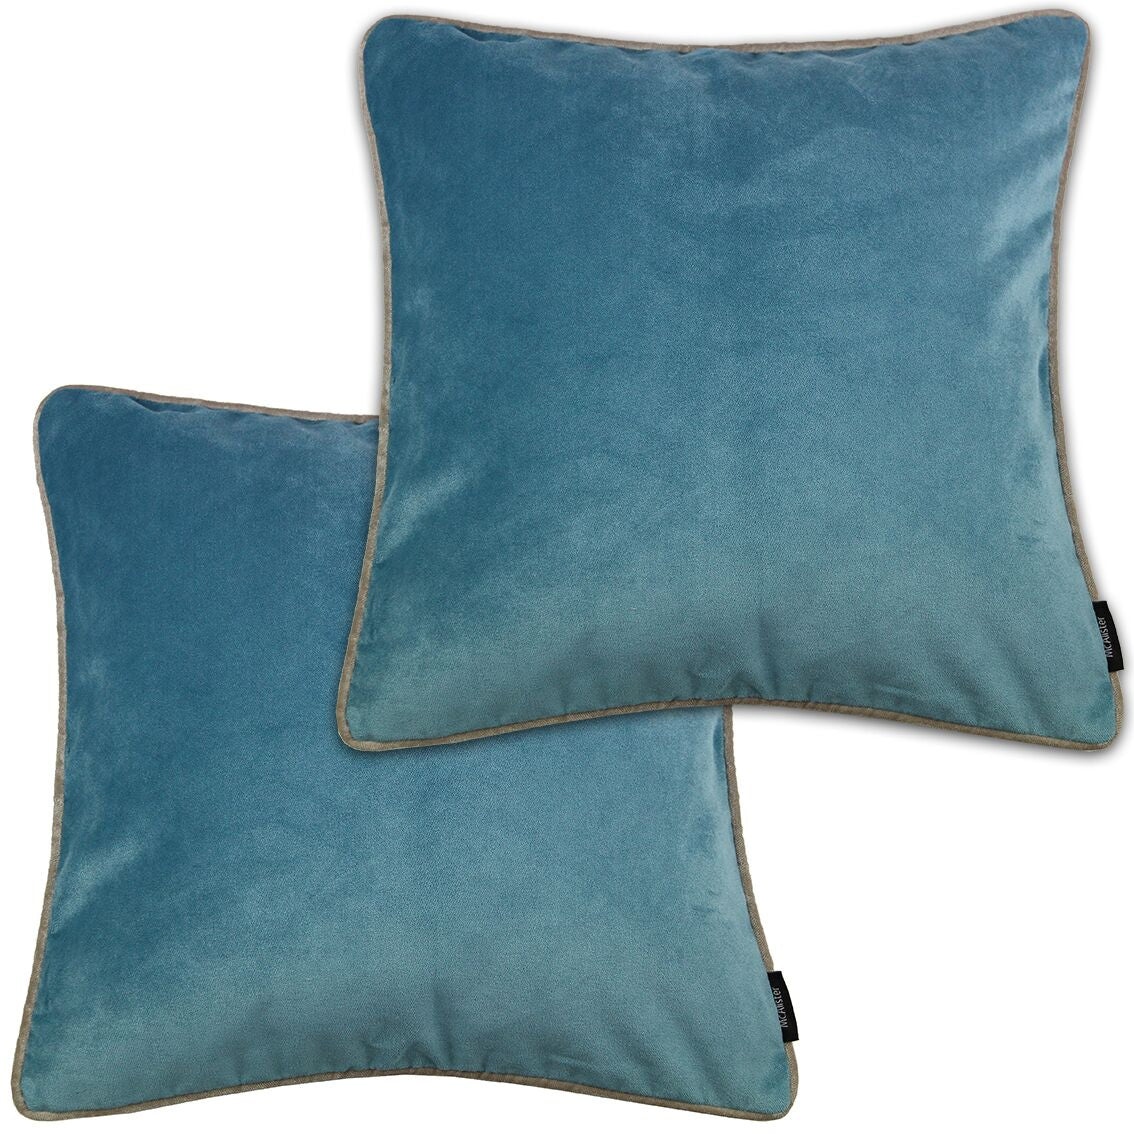 McAlister Textiles Matt Duck Egg Blue Velvet 43cm x 43cm Cushion Sets Cushions and Covers Cushion Covers Set of 2